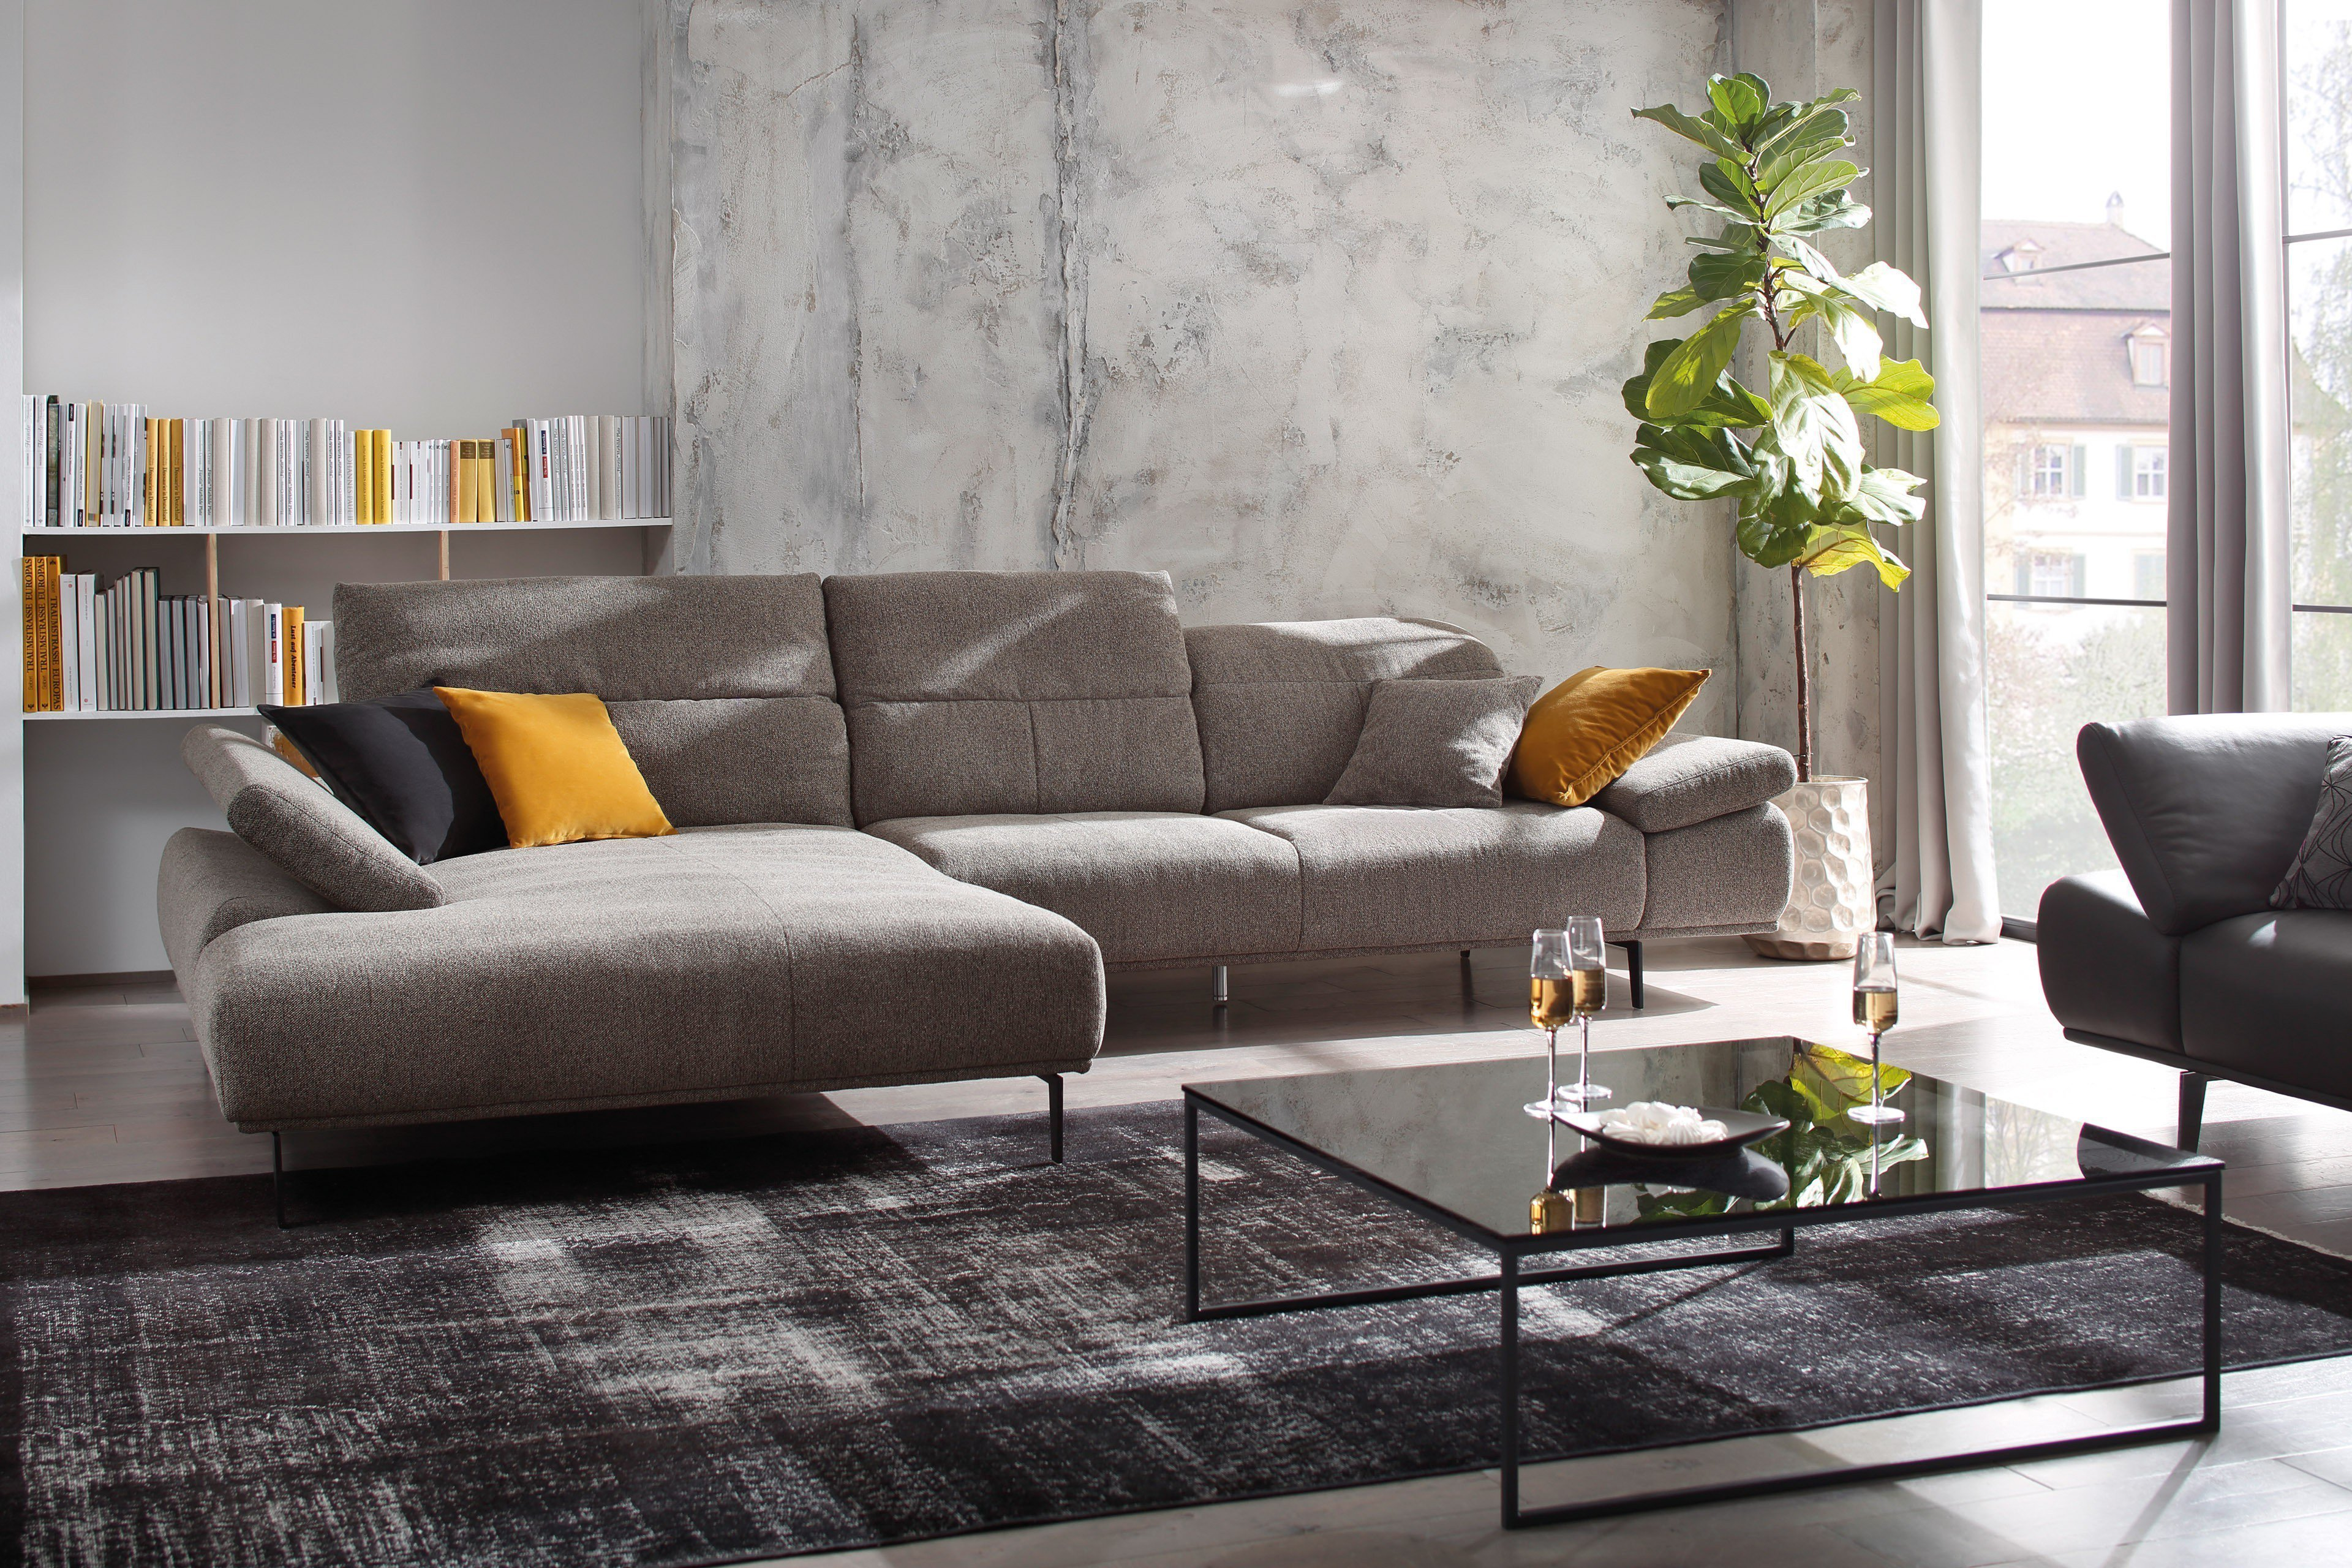 Willi Schillig 24405 Levi Ecksofa Pepper Mobel Letz Ihr Online Shop